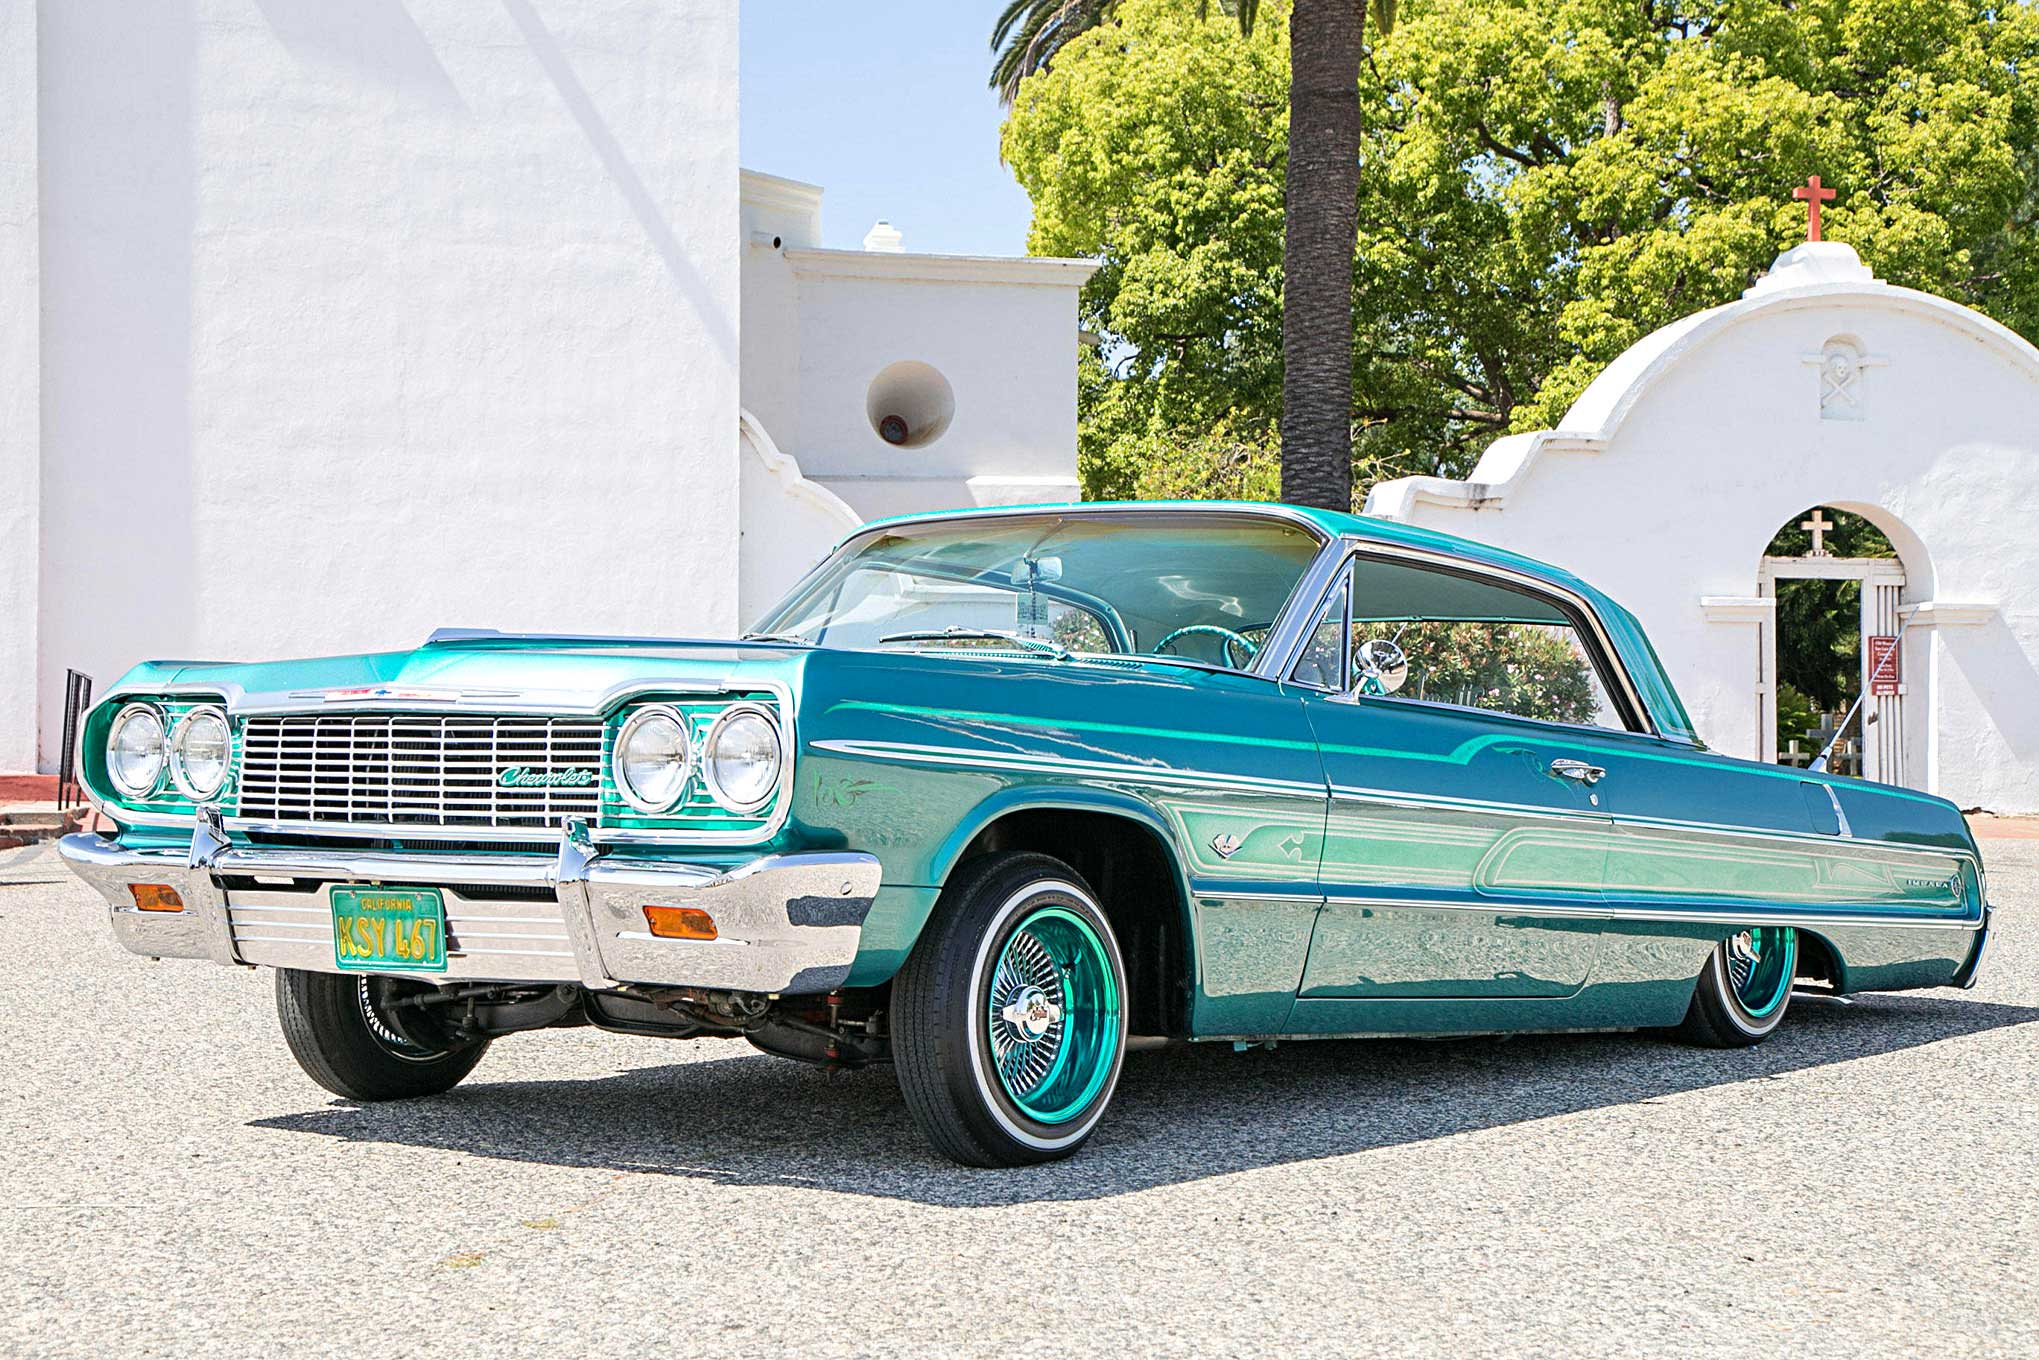 lowrider-next-door-dick-clark-video